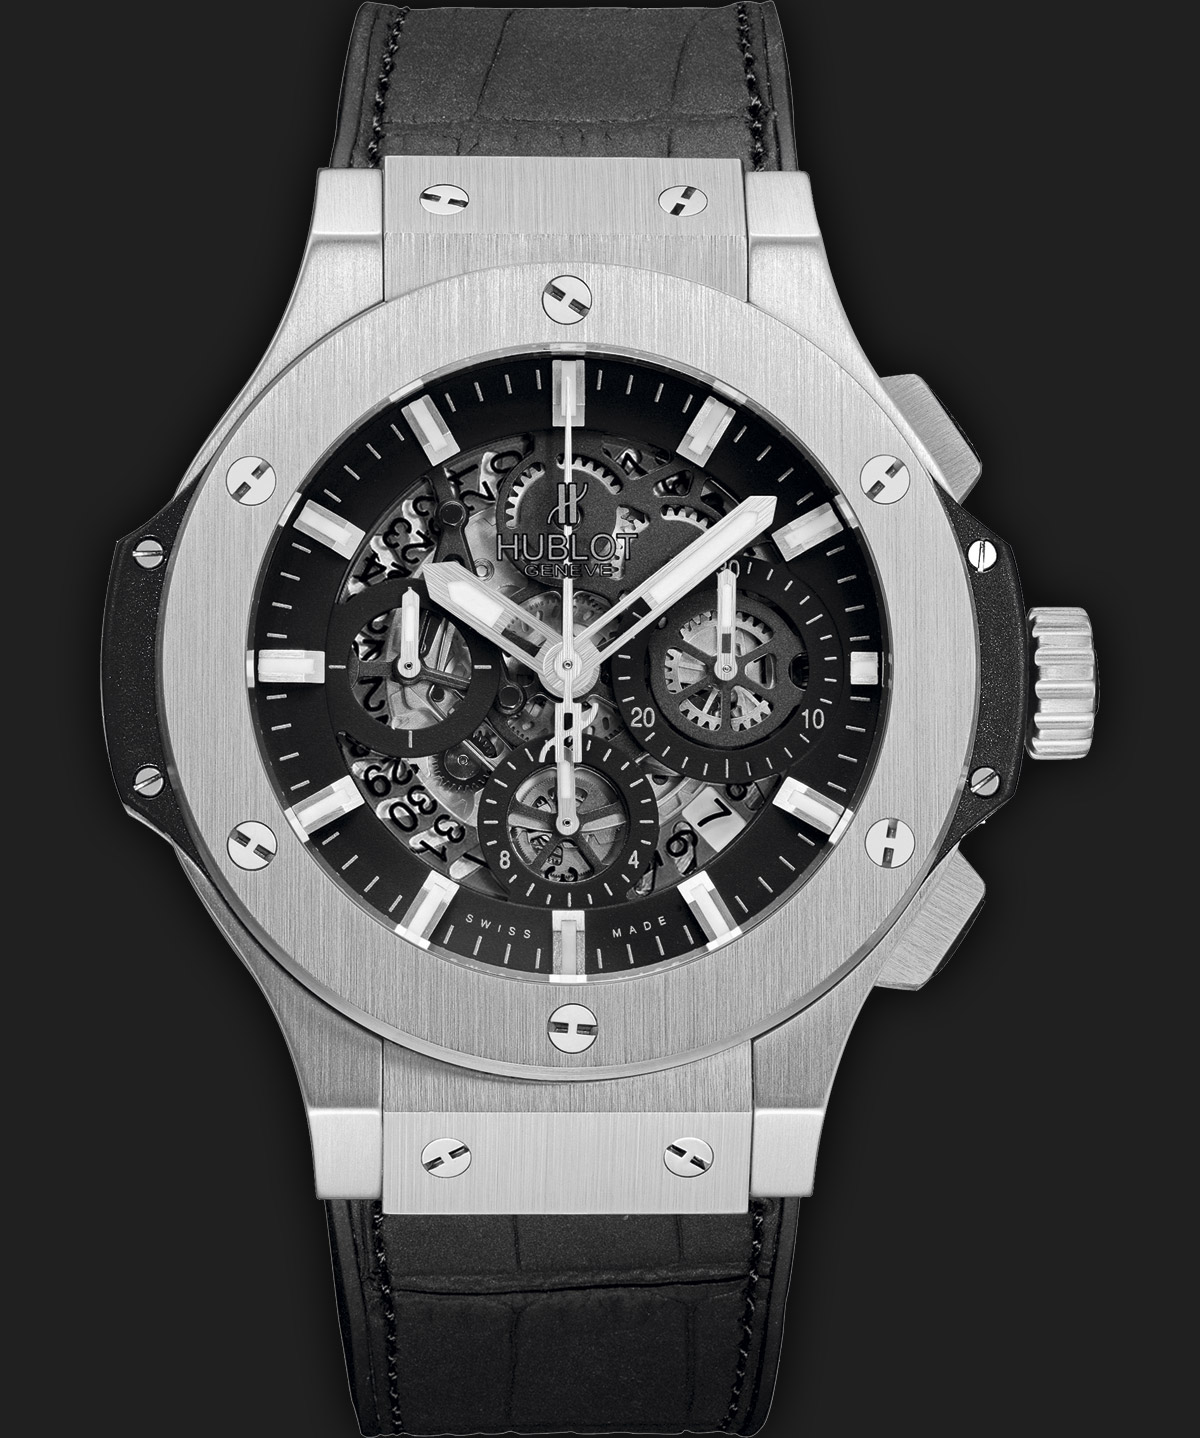 Hublot-Watch-Big-Bang-Chicago-Geneva-Seal-10.jpg